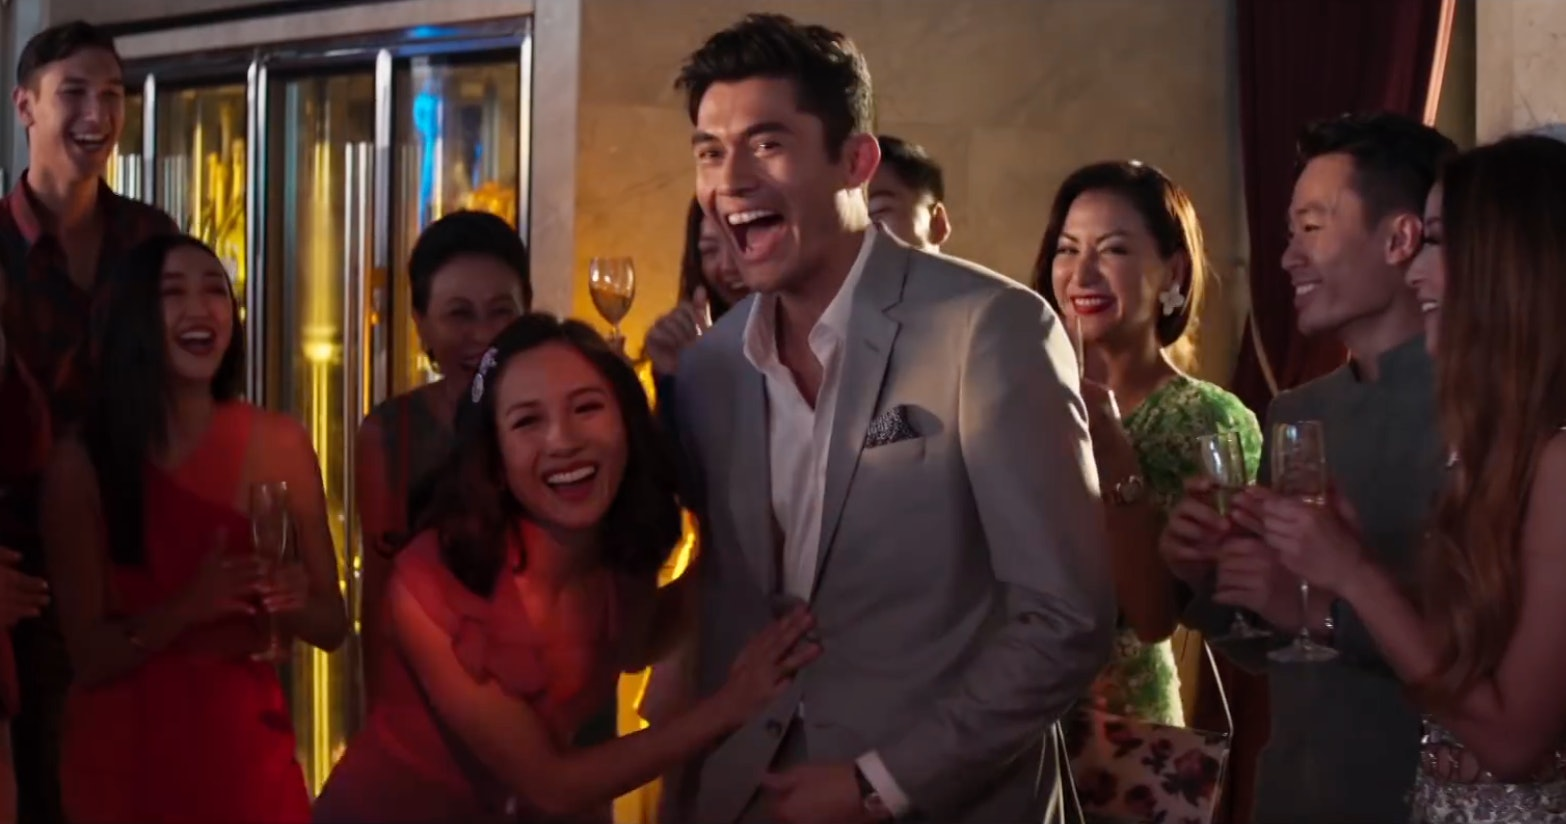 21 Movies Starring The \'Crazy Rich Asians\' Cast That You Can Watch ...